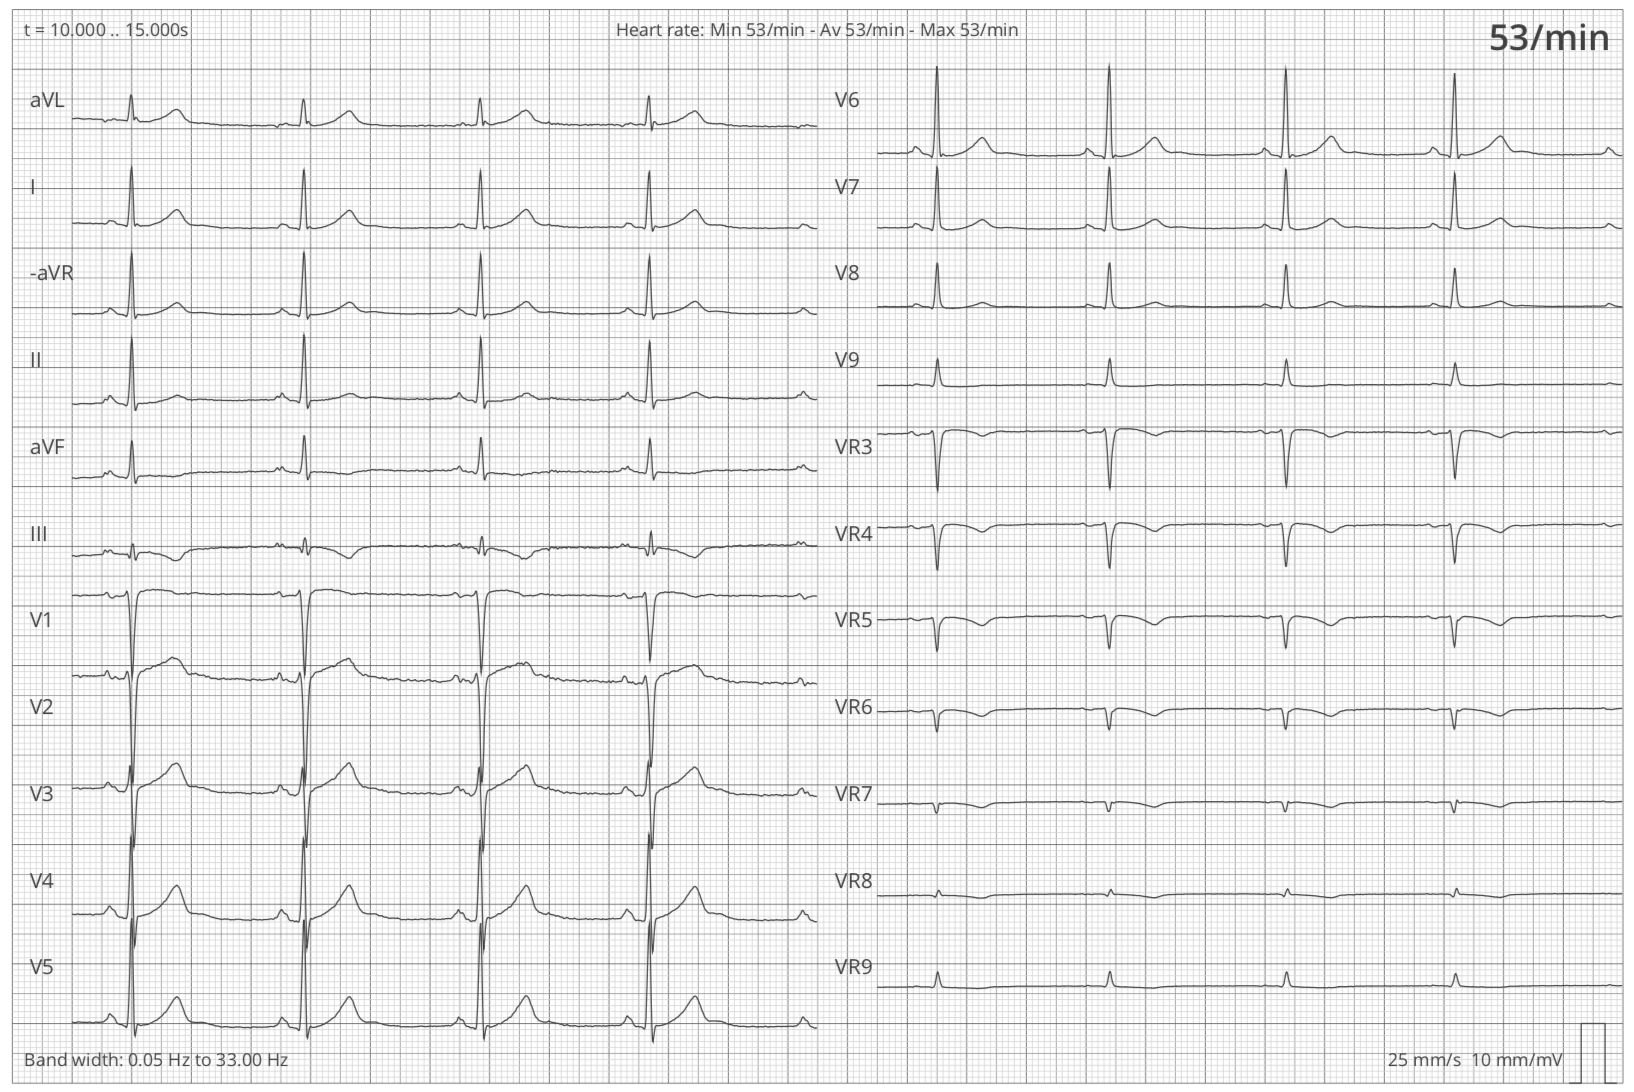 Graph showing the leads (I, II, III, aVR, aVL, aVF, V1-V9, VR2-VR9) of a 12-lead-ECG